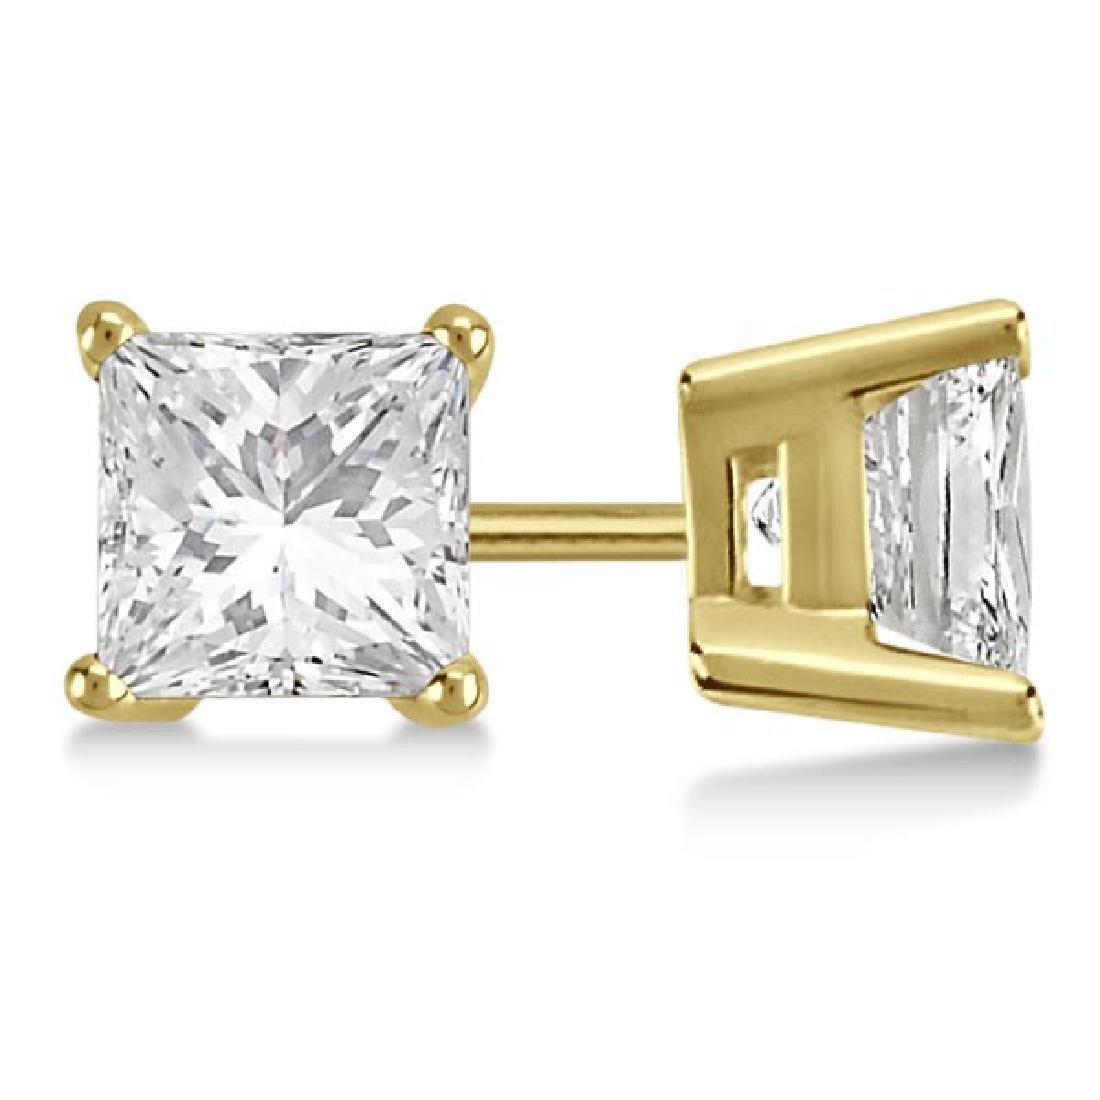 CERTIFIED 1.05 CTW PRINCESS E/SI1 DIAMOND SOLITAIRE EAR